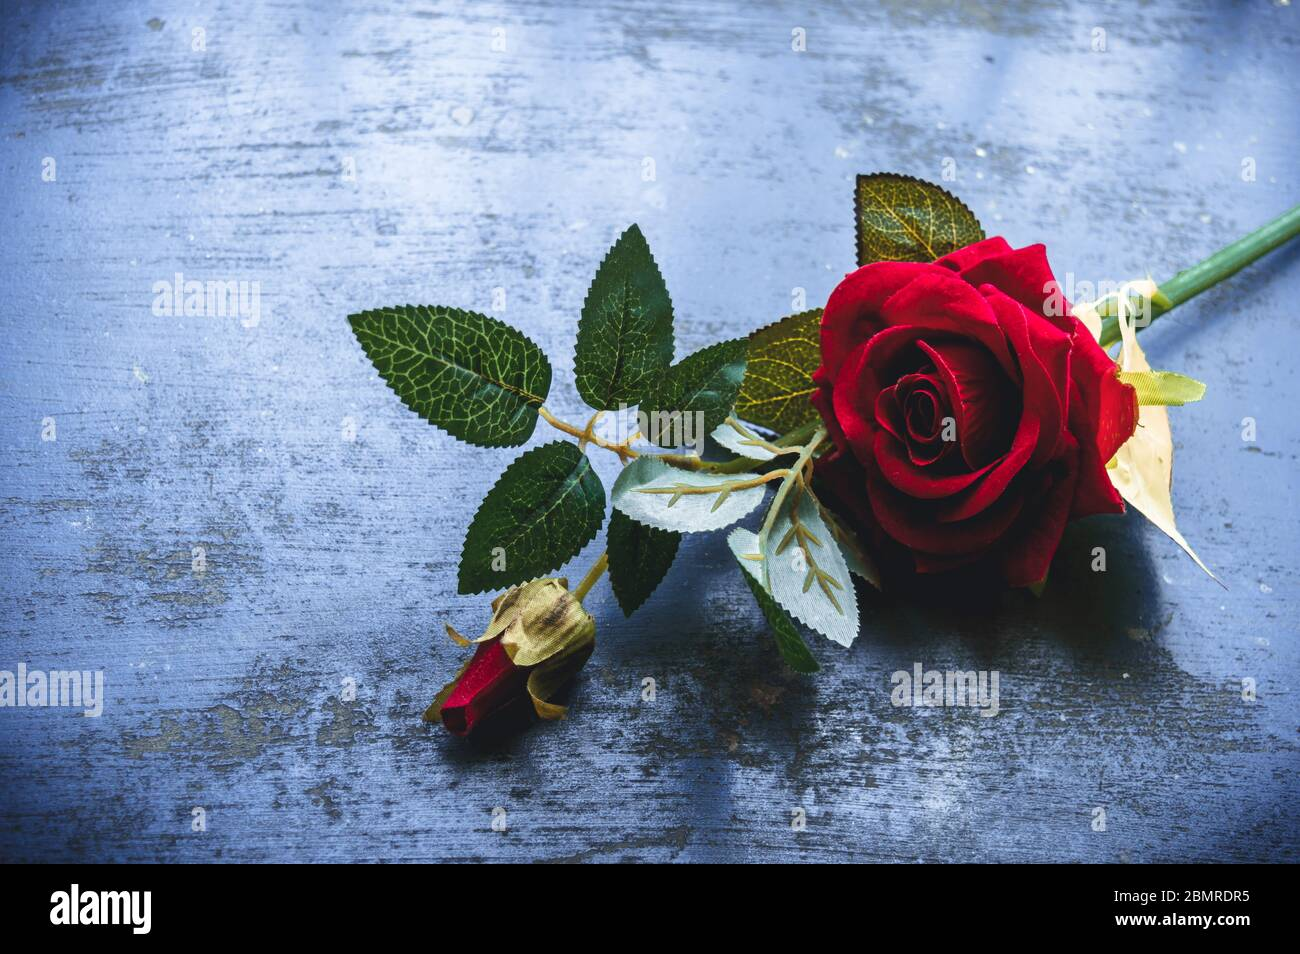 Red Rose Flower On Rustic Floor Nature Still Life Love Romantic Background Theme Wallpaper Web Banner Design Decoration For Friendship And Valentine Stock Photo Alamy